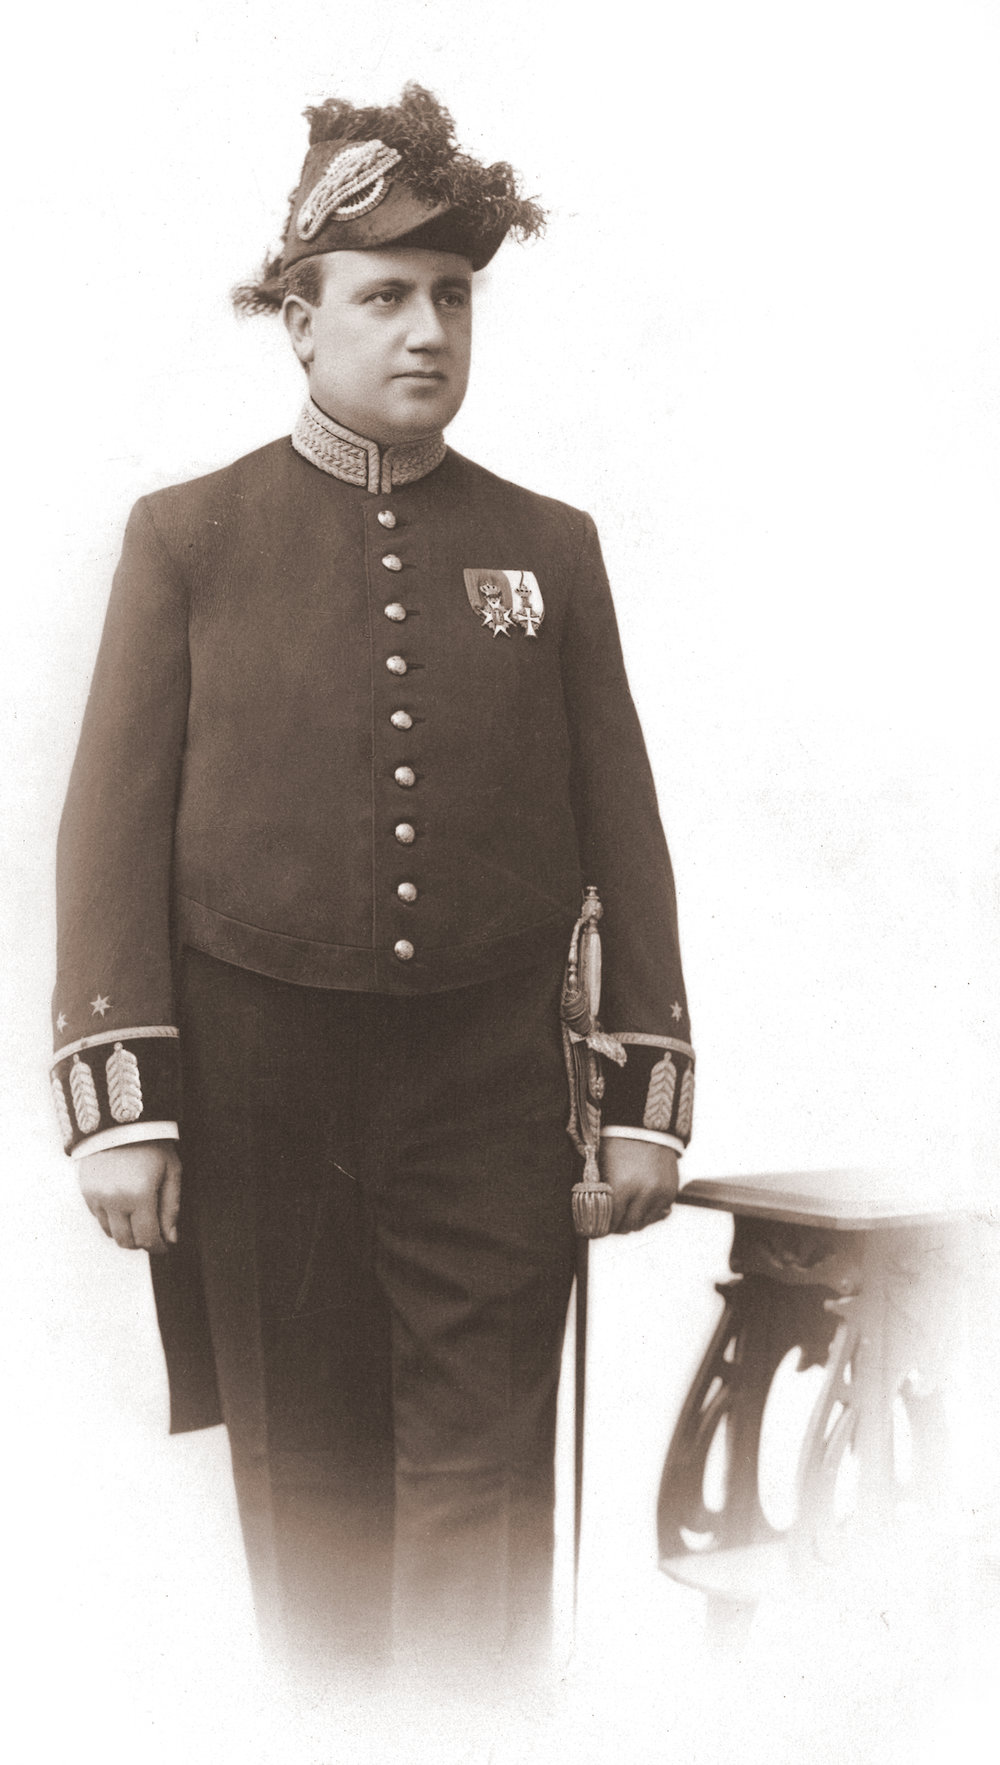 Richard Strelitz c1913 in the Danish uniform of the Consul-General, wearing the Knighthood of the Order of the Dannebrog (right), conferred on him by the King of Denmark in 1904, and the Knighthood of the Vasa Order (left), conferred on him by the King of Sweden in 1912. Courtesy RAC Archives.